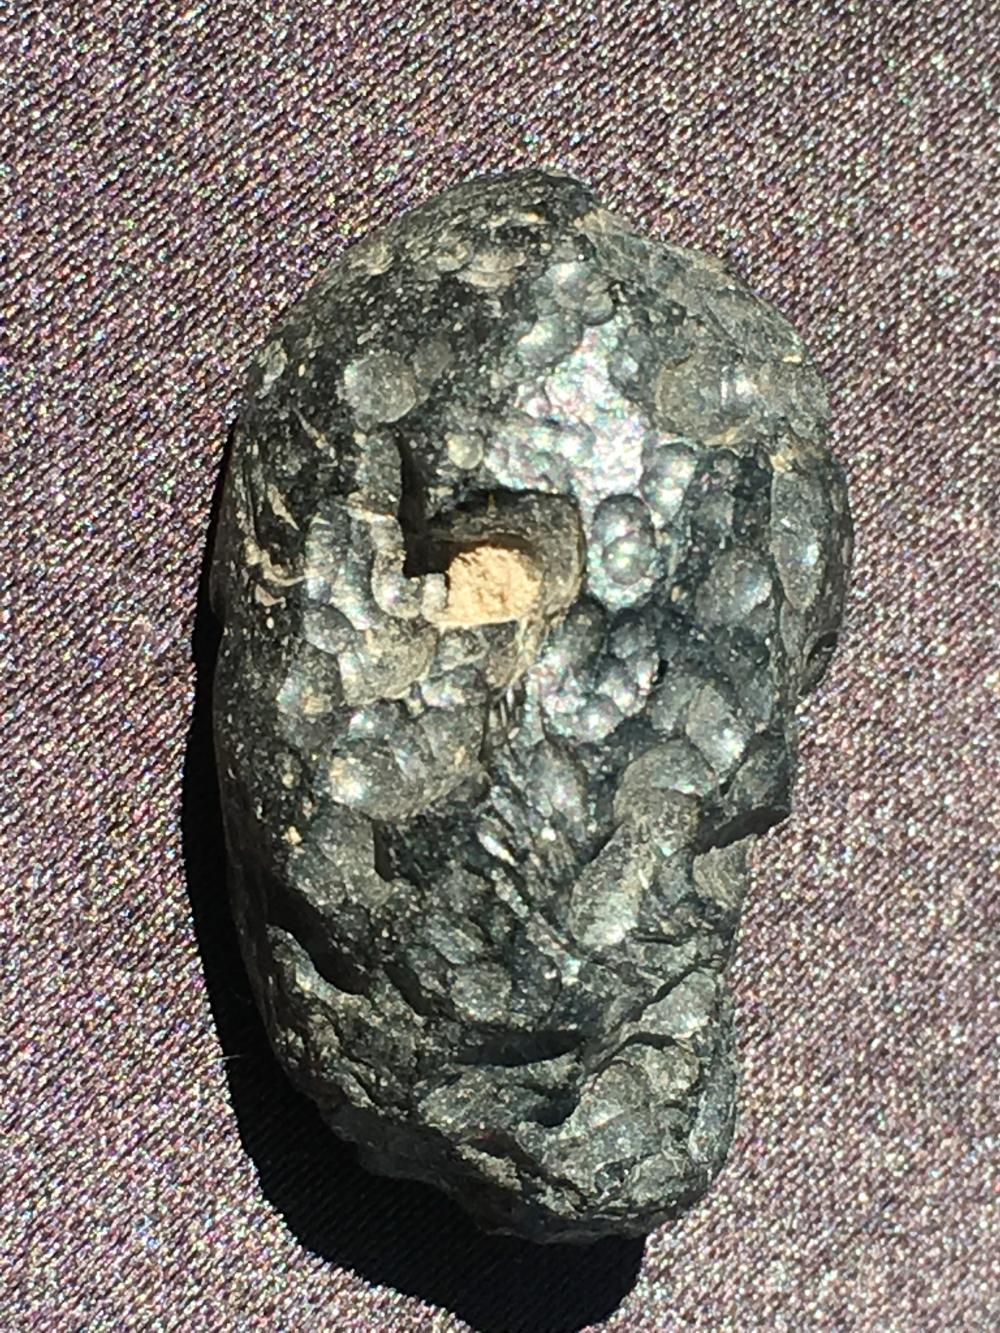 Lot 133: Meteorite, Rock, Space, Natural, Collectible, Specimen